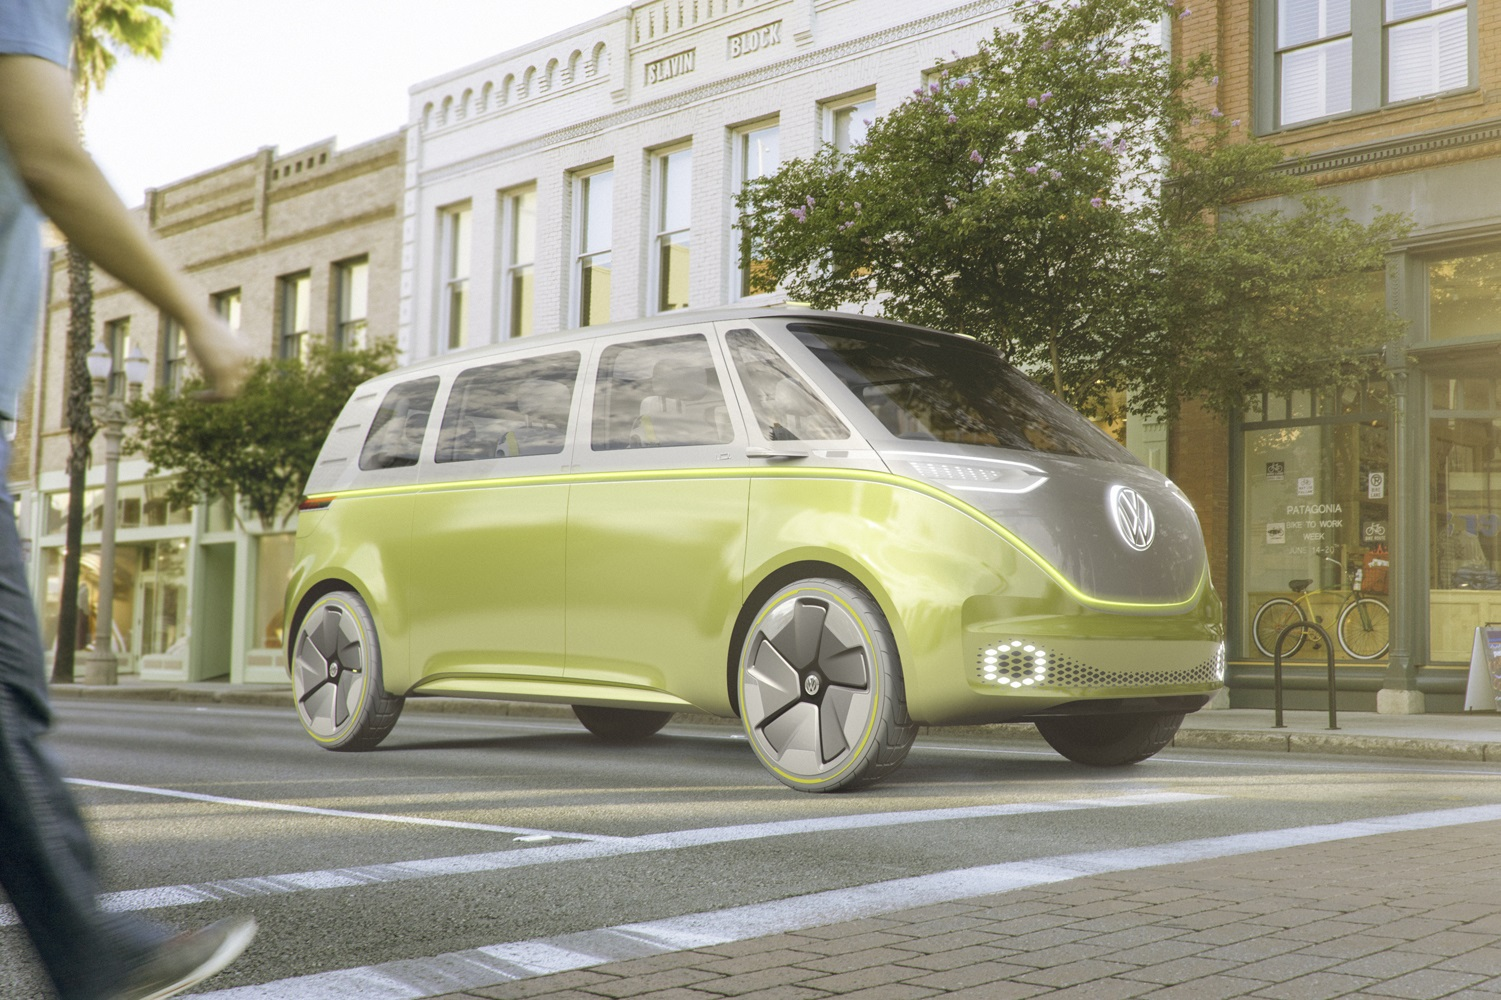 Nvidia partners with Uber, Volkswagen and Baidu on driverless cars